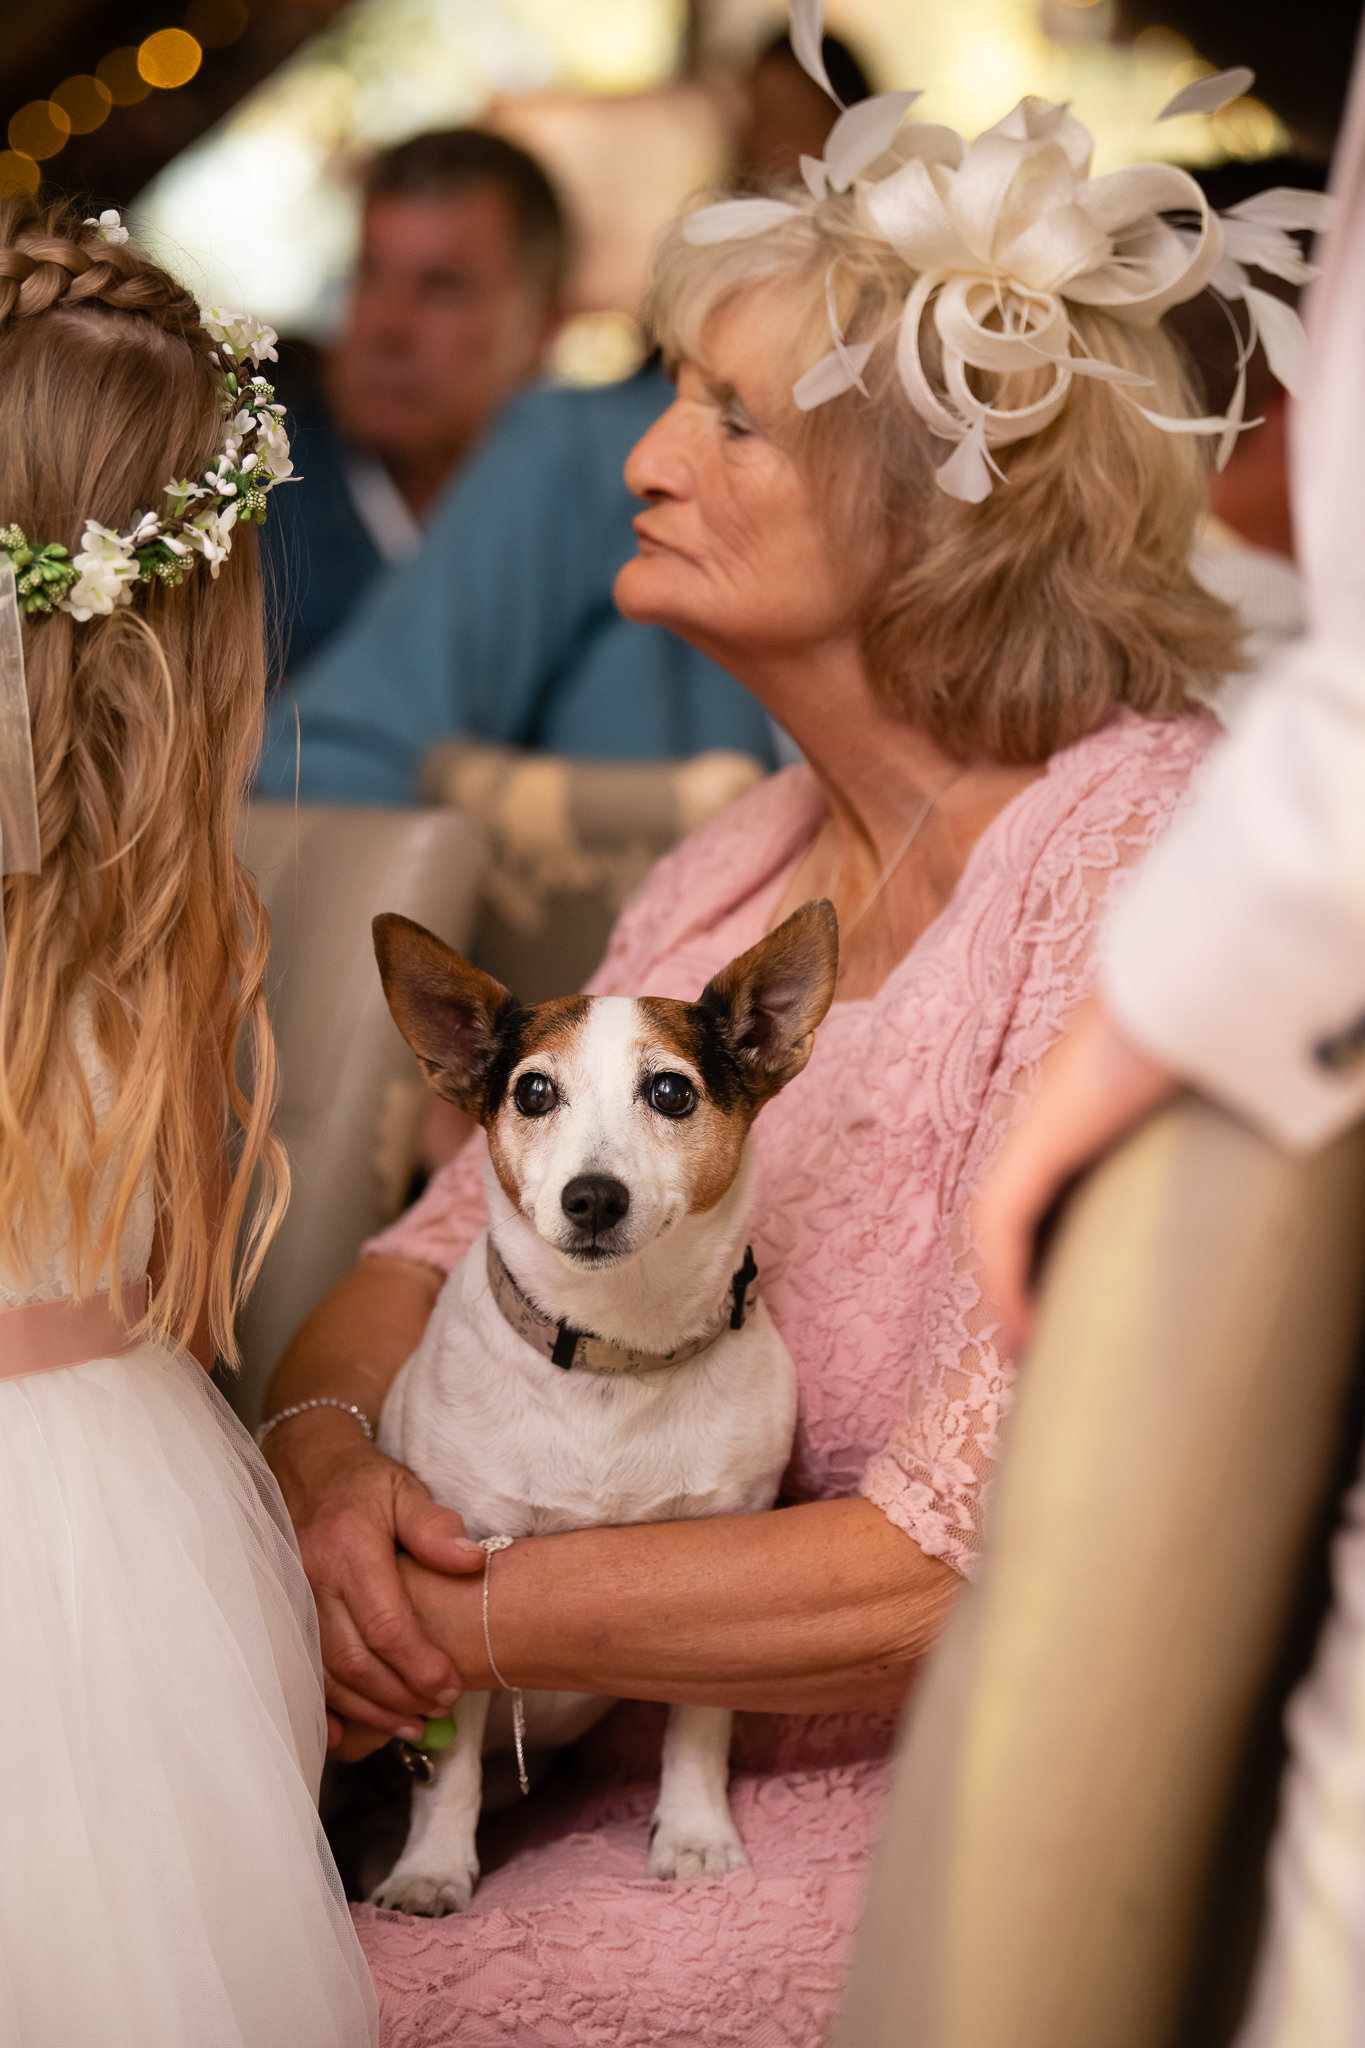 The Mother of the Bride's dog.